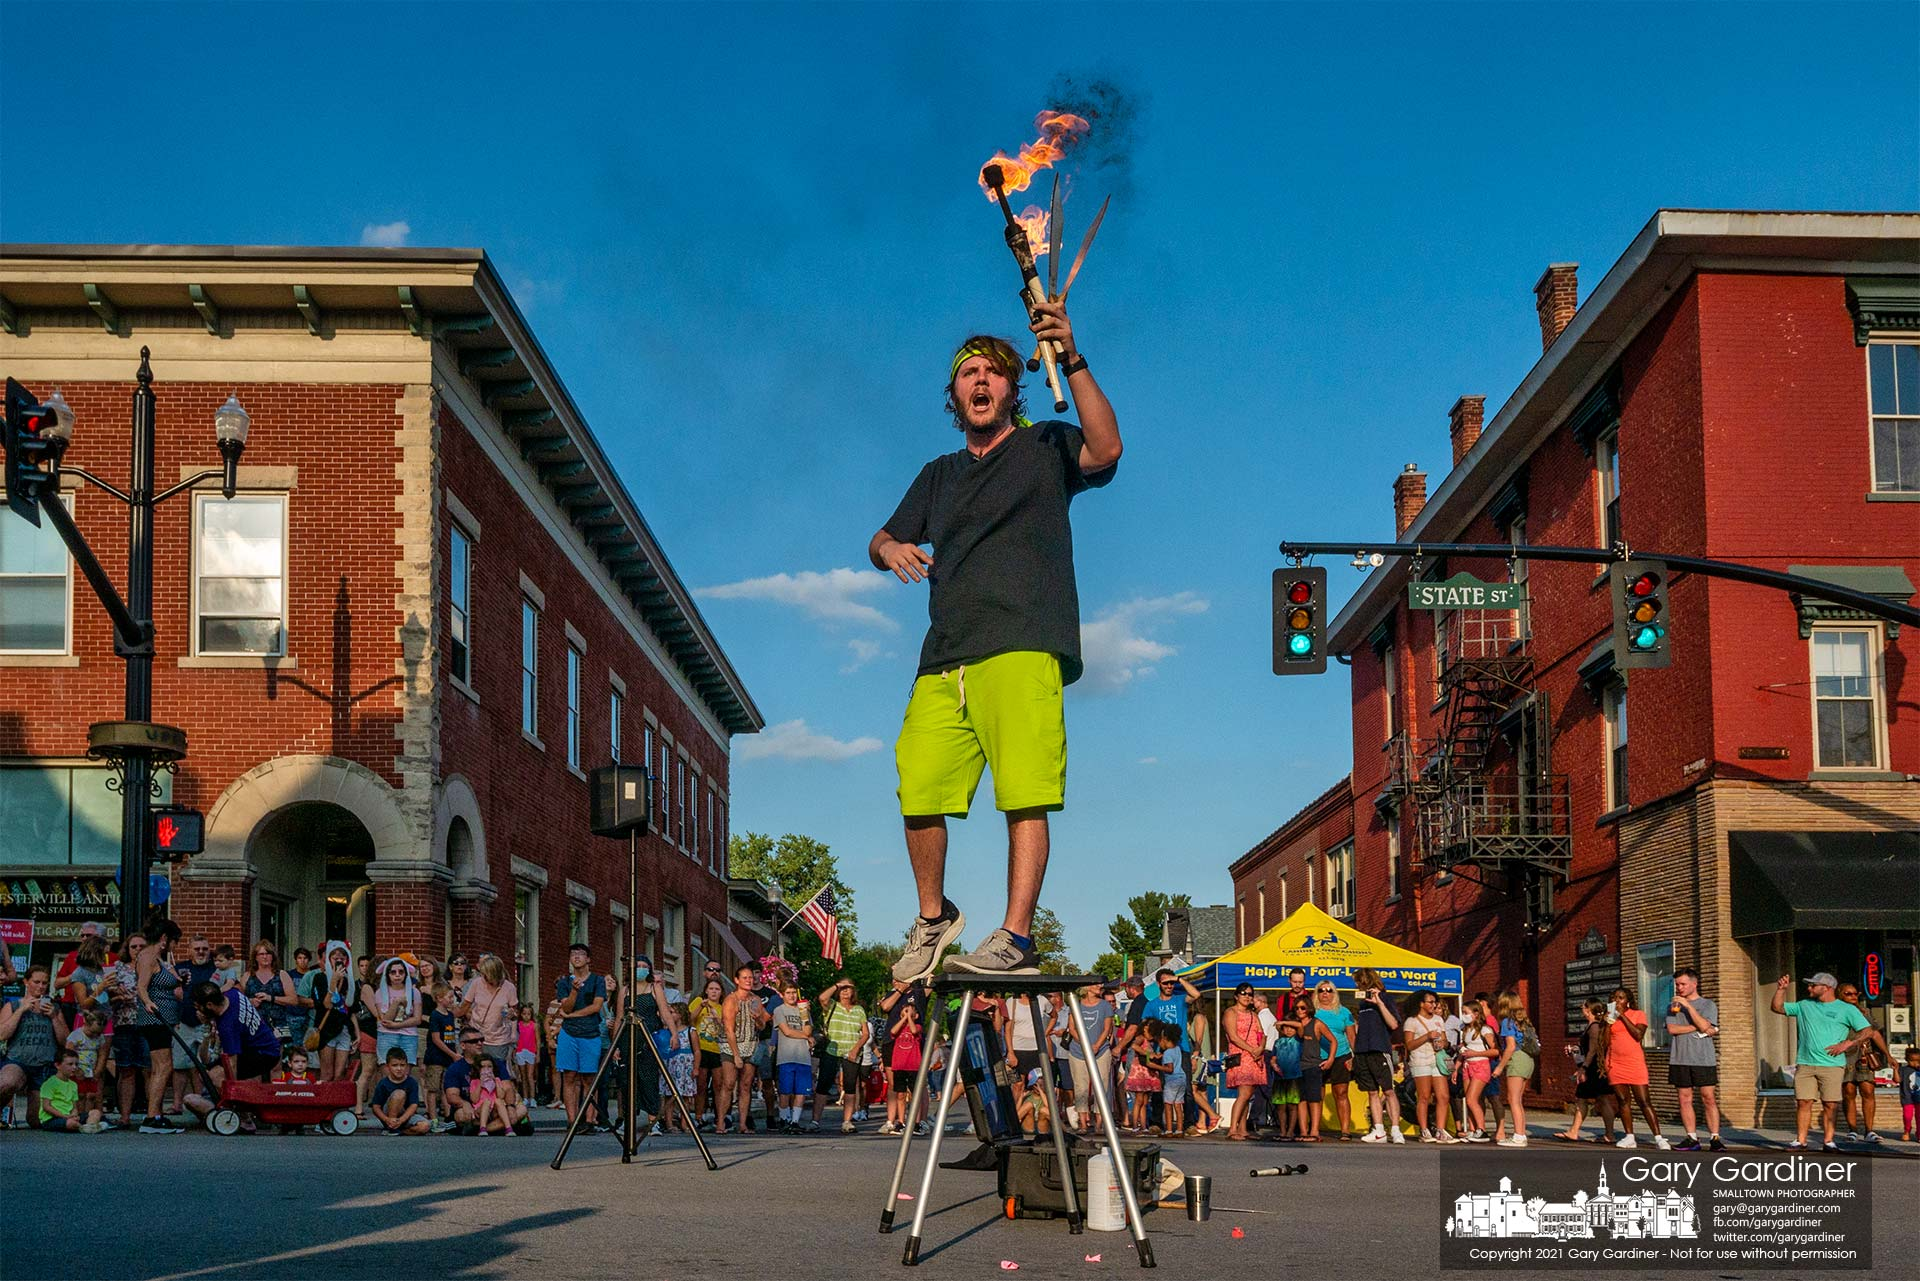 A juggler bearing large knives and flaming batons performs at the center of State and College as part of the Fourth Friday entertainment in Uptown Westerville. My Final Photo for Aug. 27, 2021.